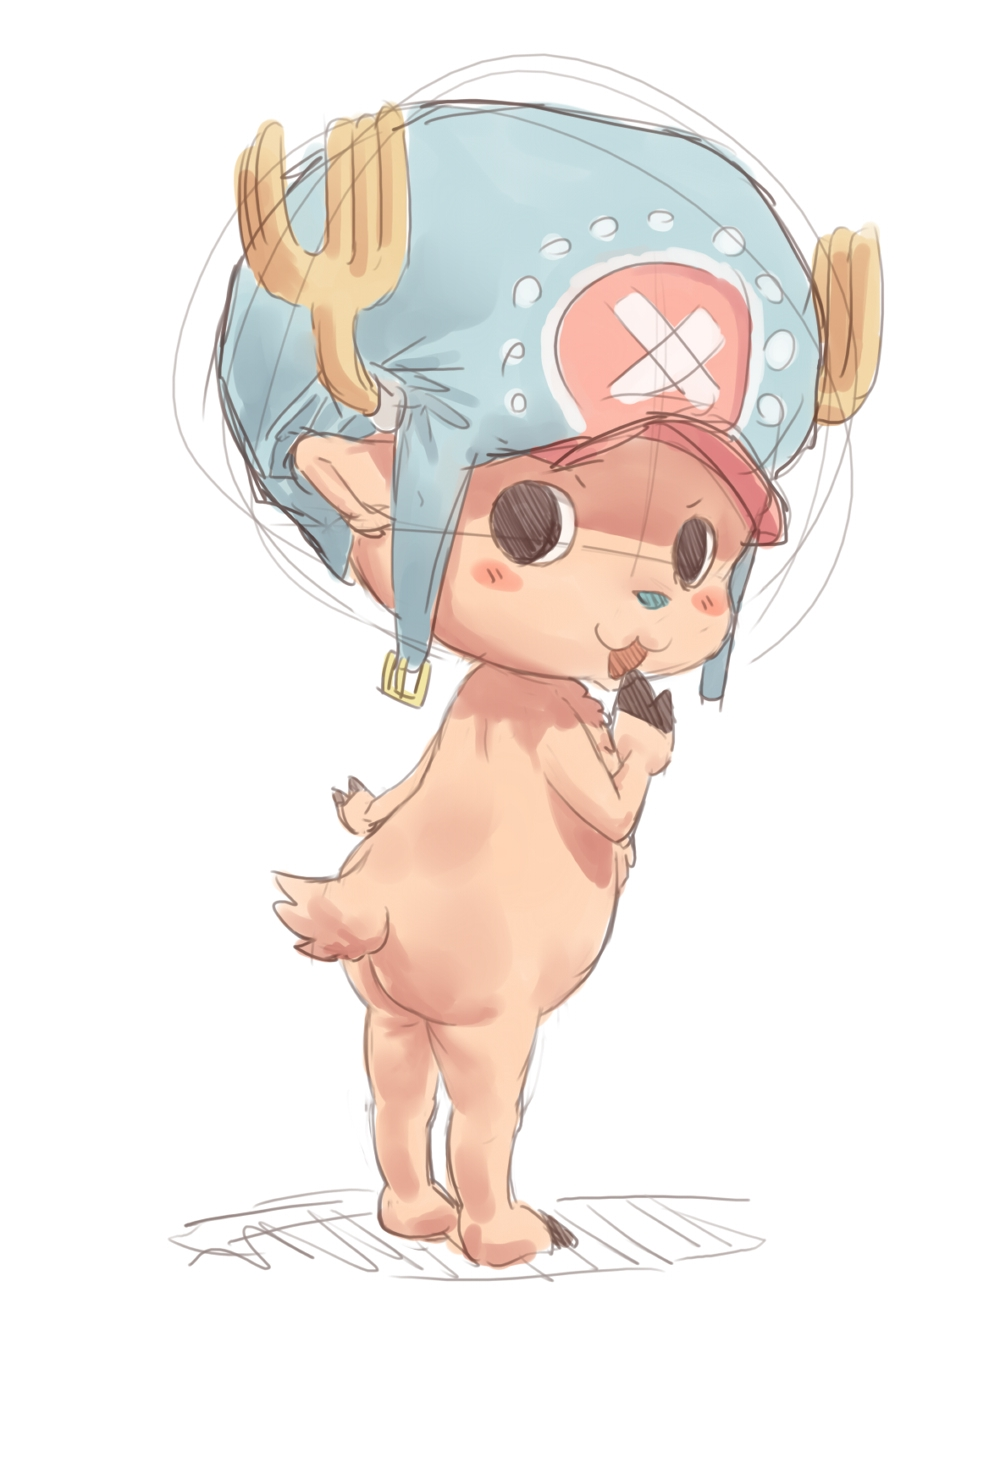 Toon sex pic ##000130875345 1boy antlers back chopper hat male monster boy nude one piece solo solo male standing tail tony tony chopper